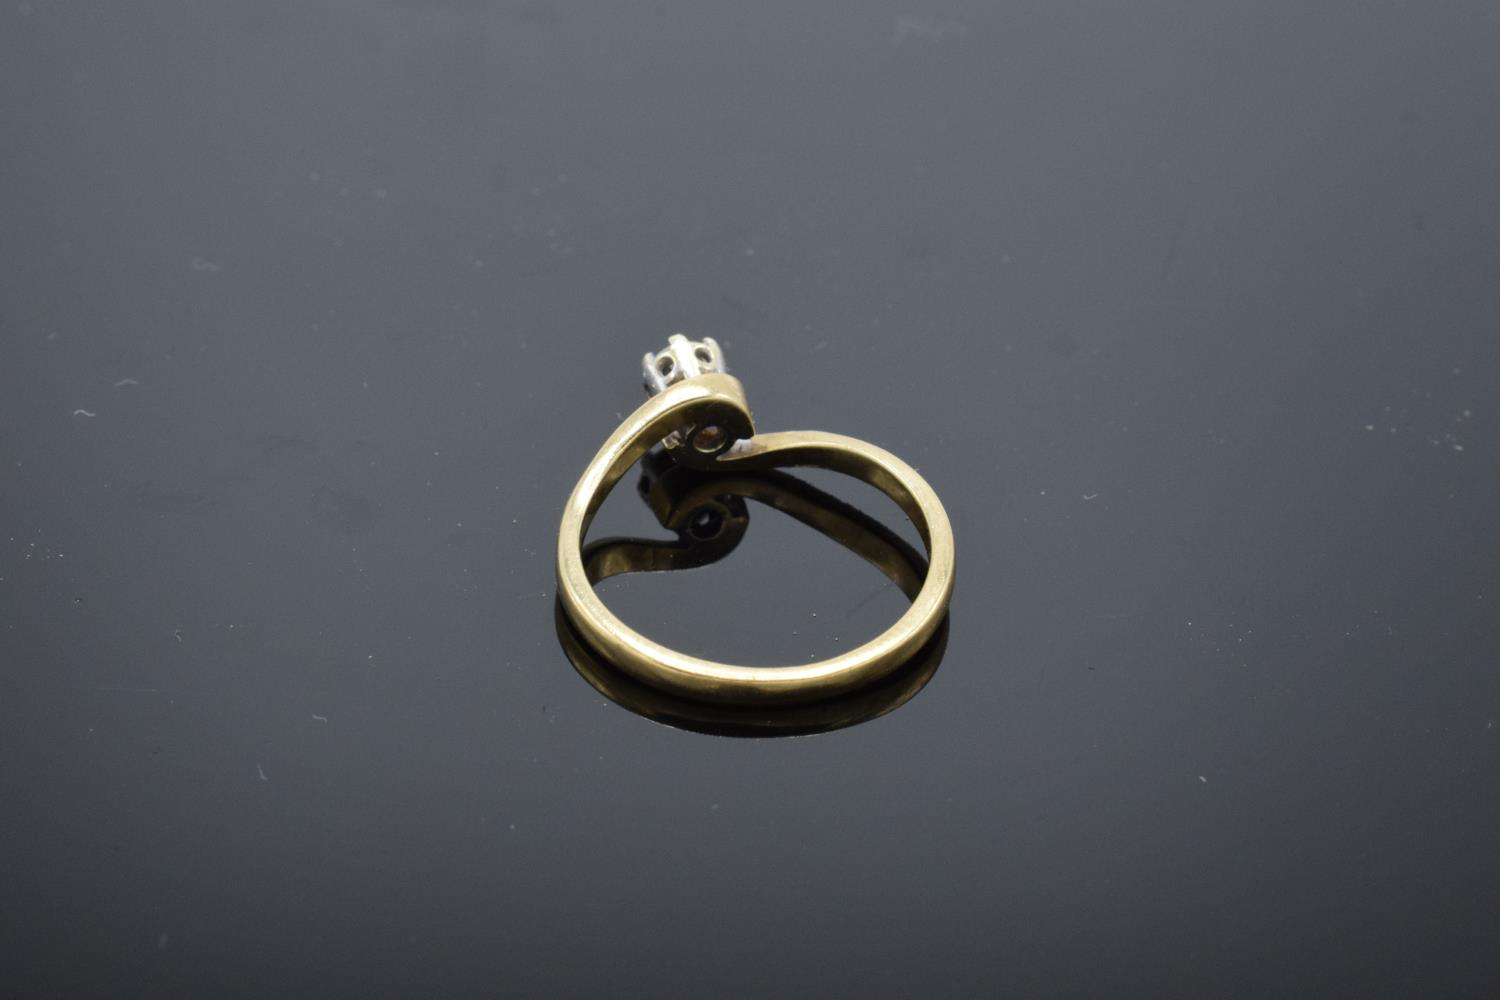 9ct gold ladies solitaire diamond ring. UK size L/M. 1.8 grams gross weight. Full hallmarks. - Image 3 of 4